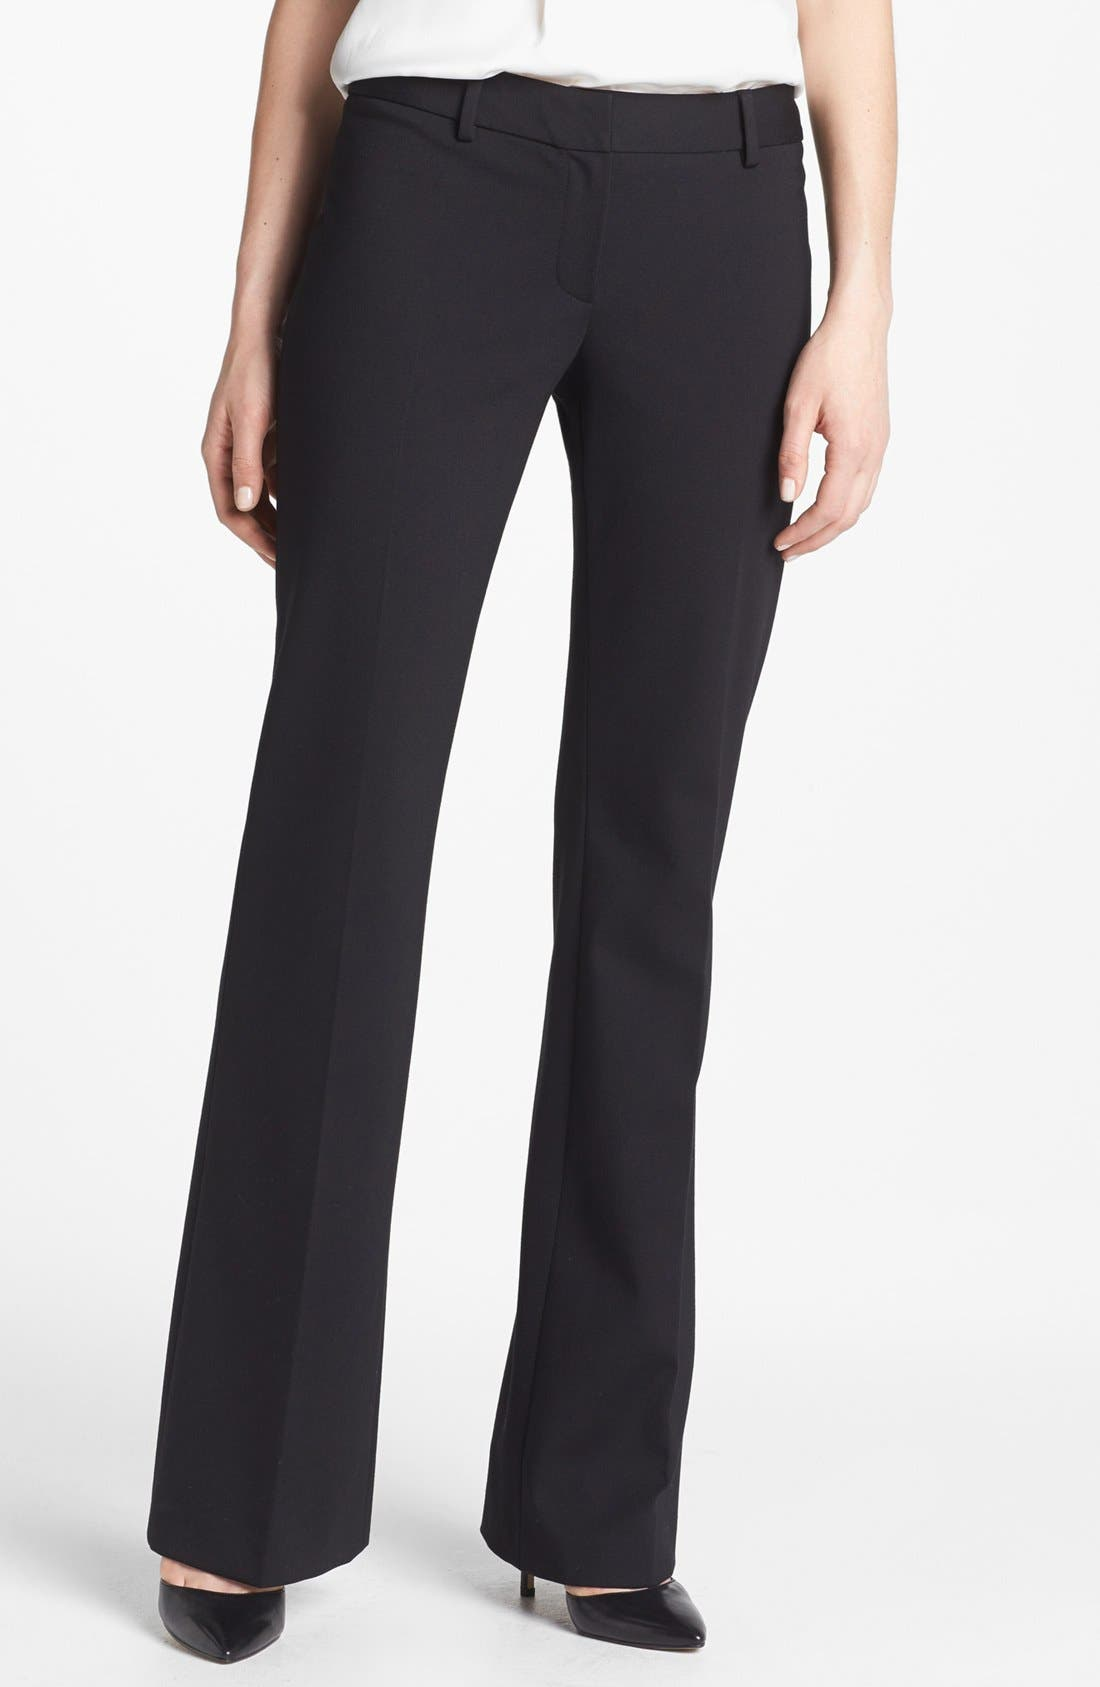 Alternate Image 1 Selected - Elie Tahari 'Verda' Trousers